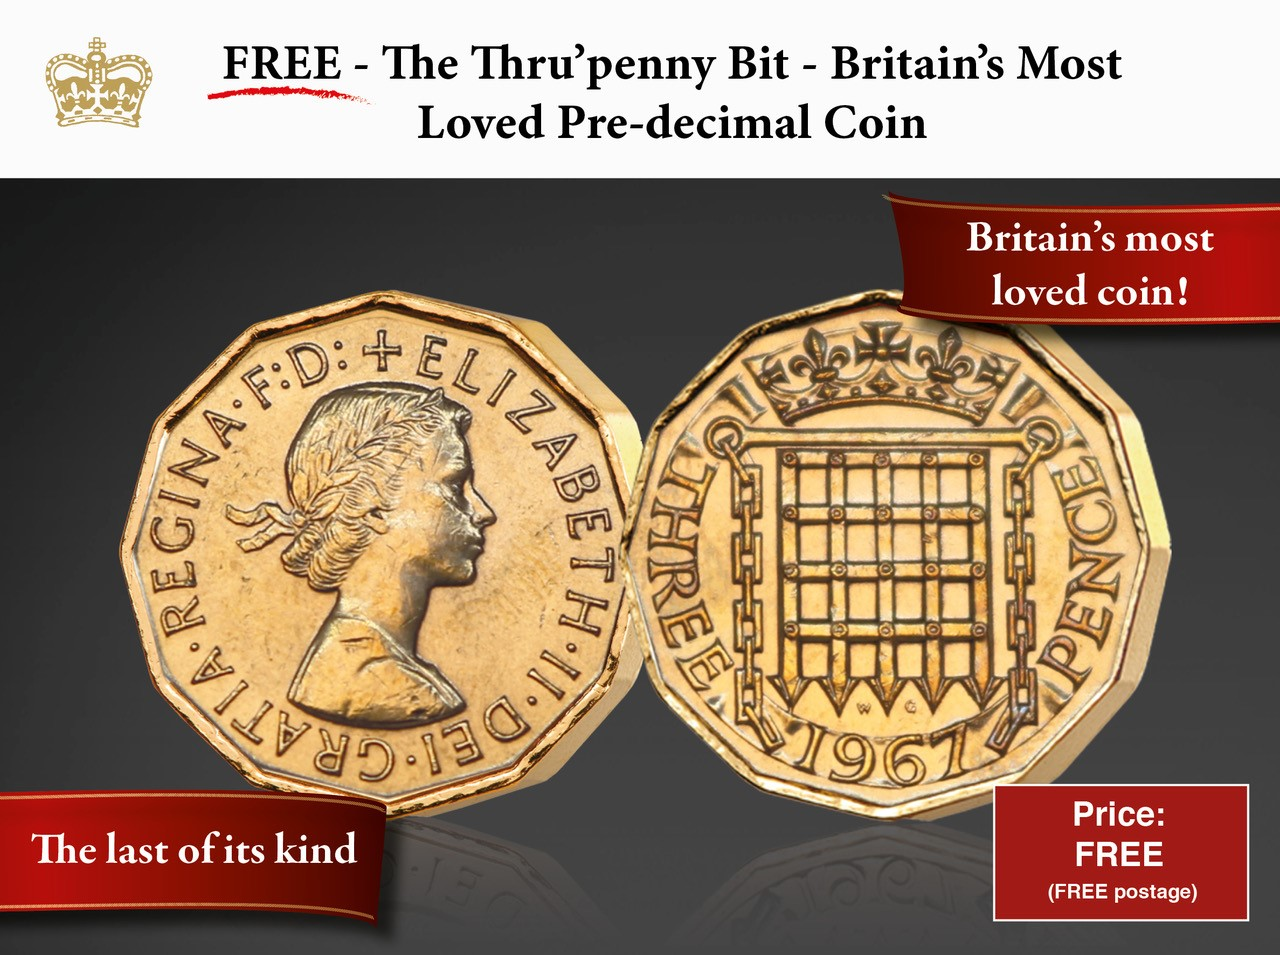 Queen Elizabeth II Threepence - Britain's most loved coin!